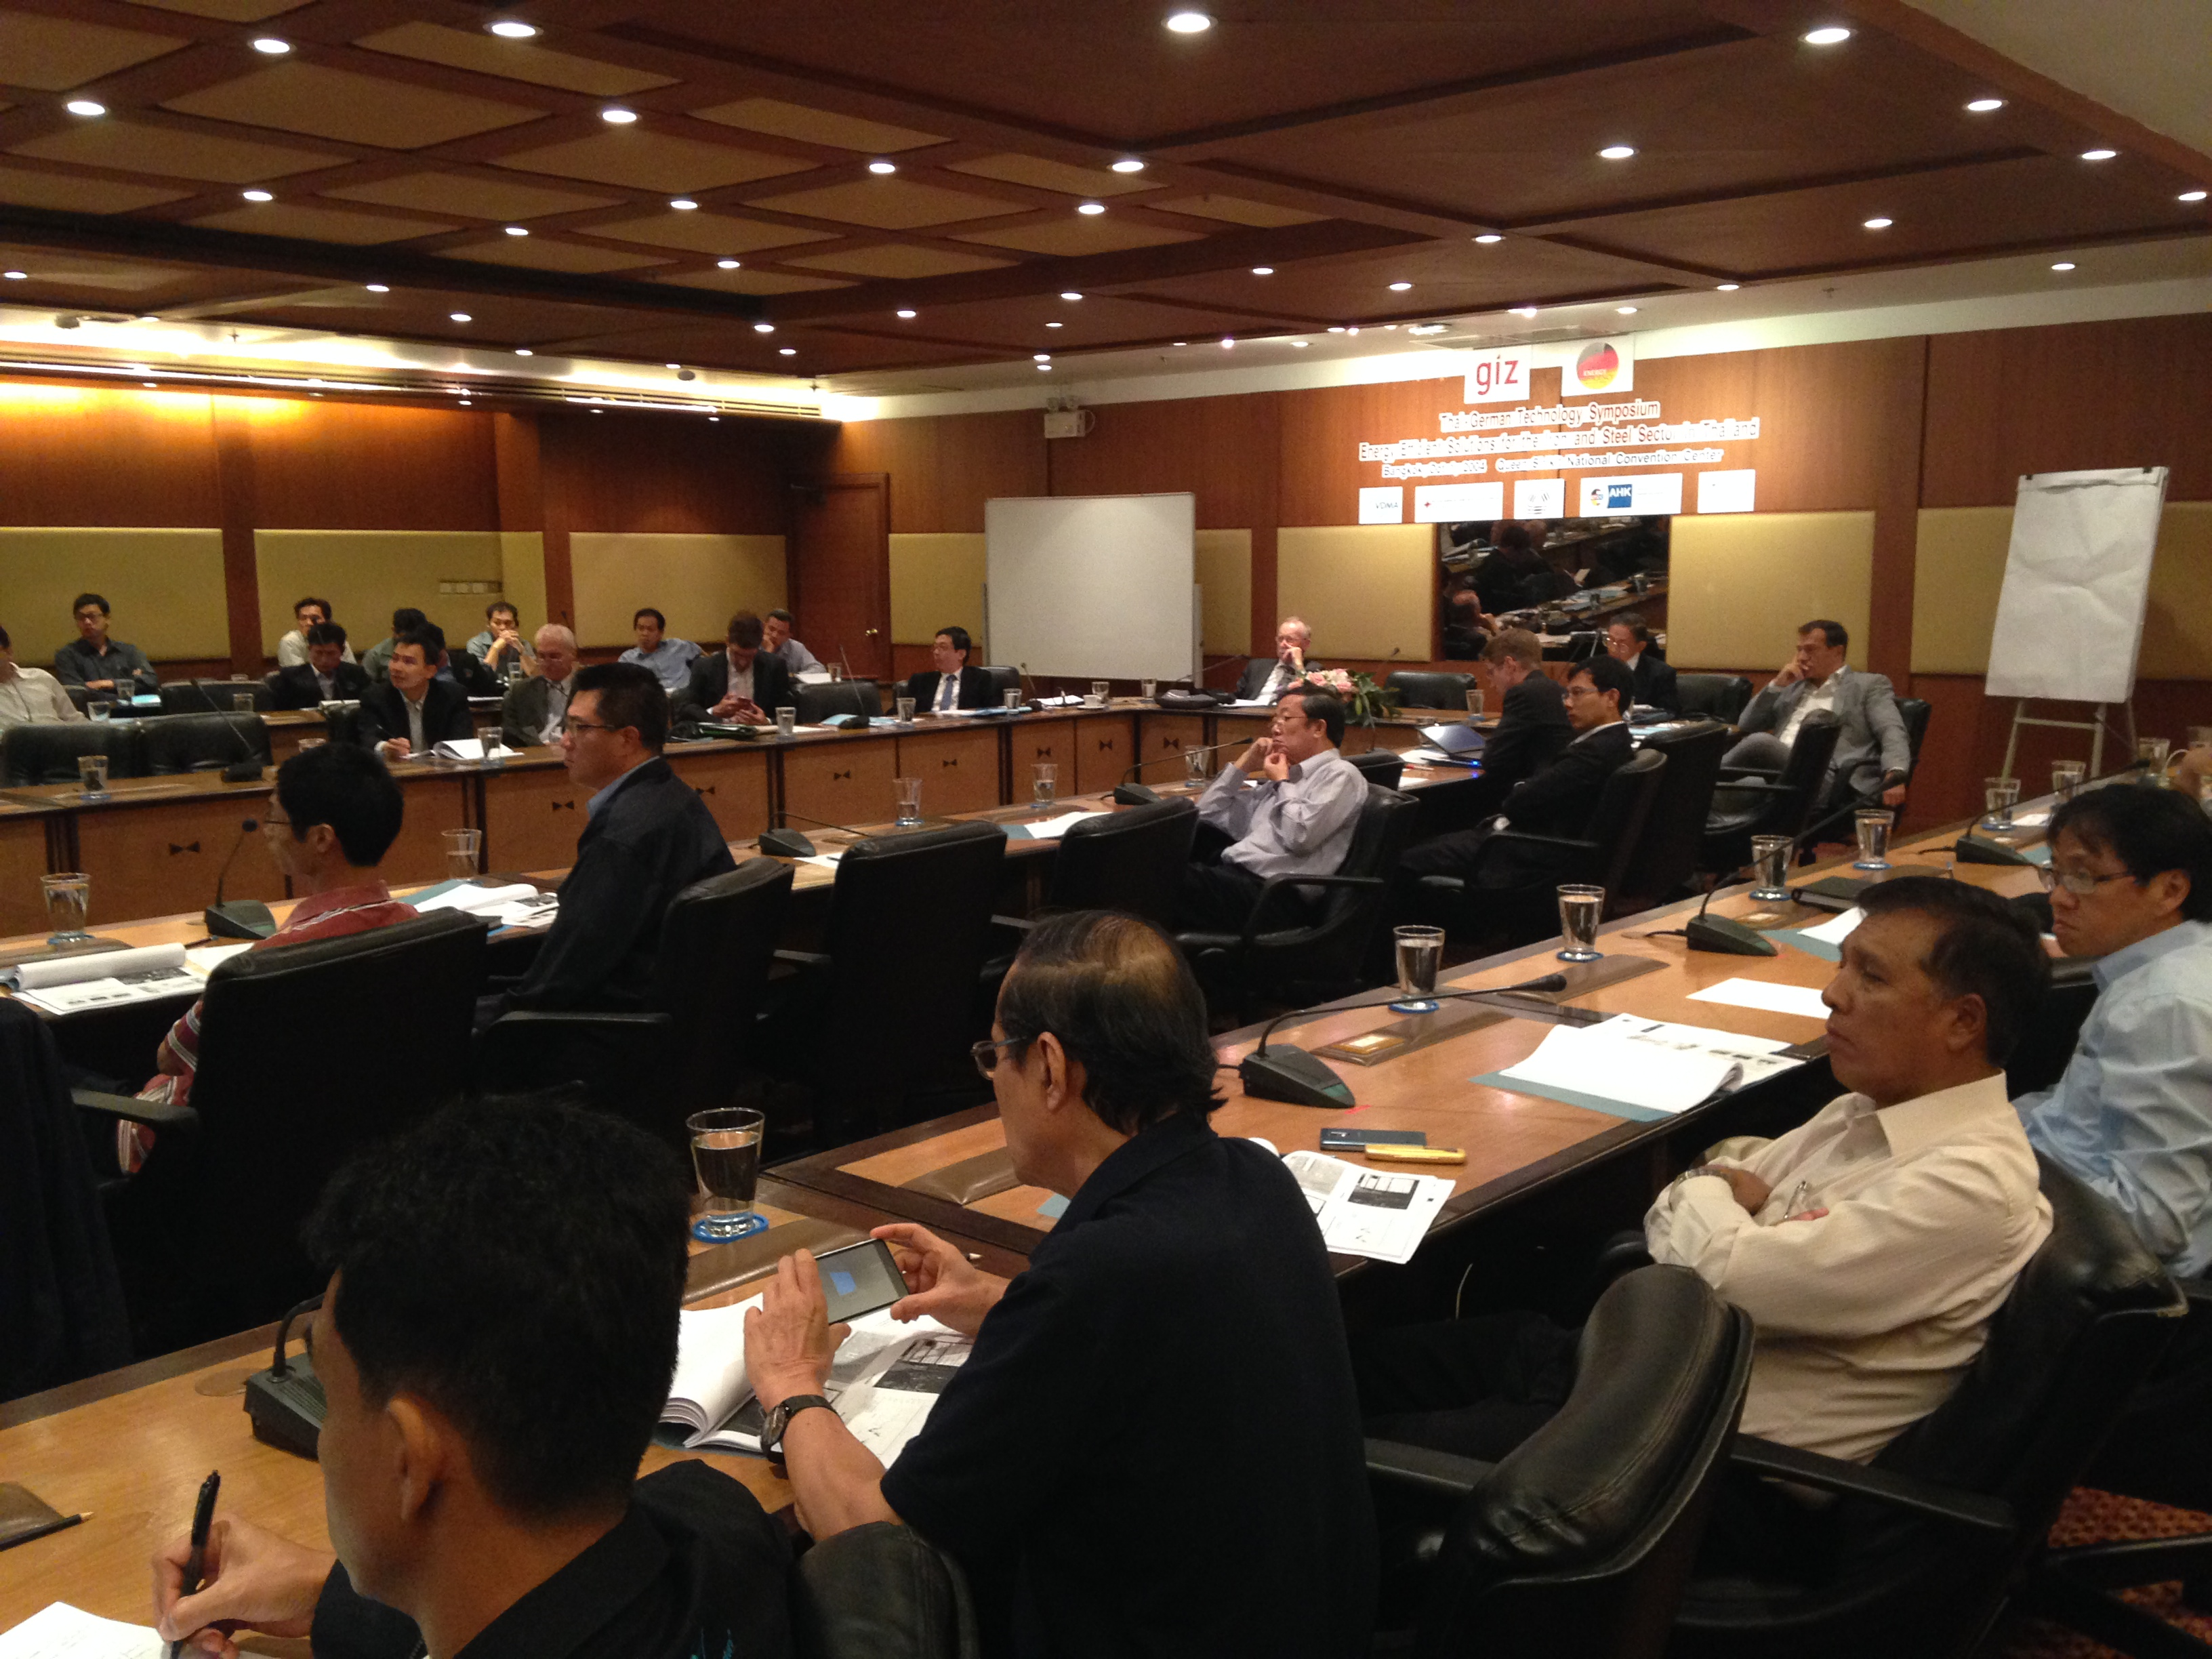 Thai-German Technology Symposium on Energy Efficient Solutions for the Iron and Steel Sector in Thailand